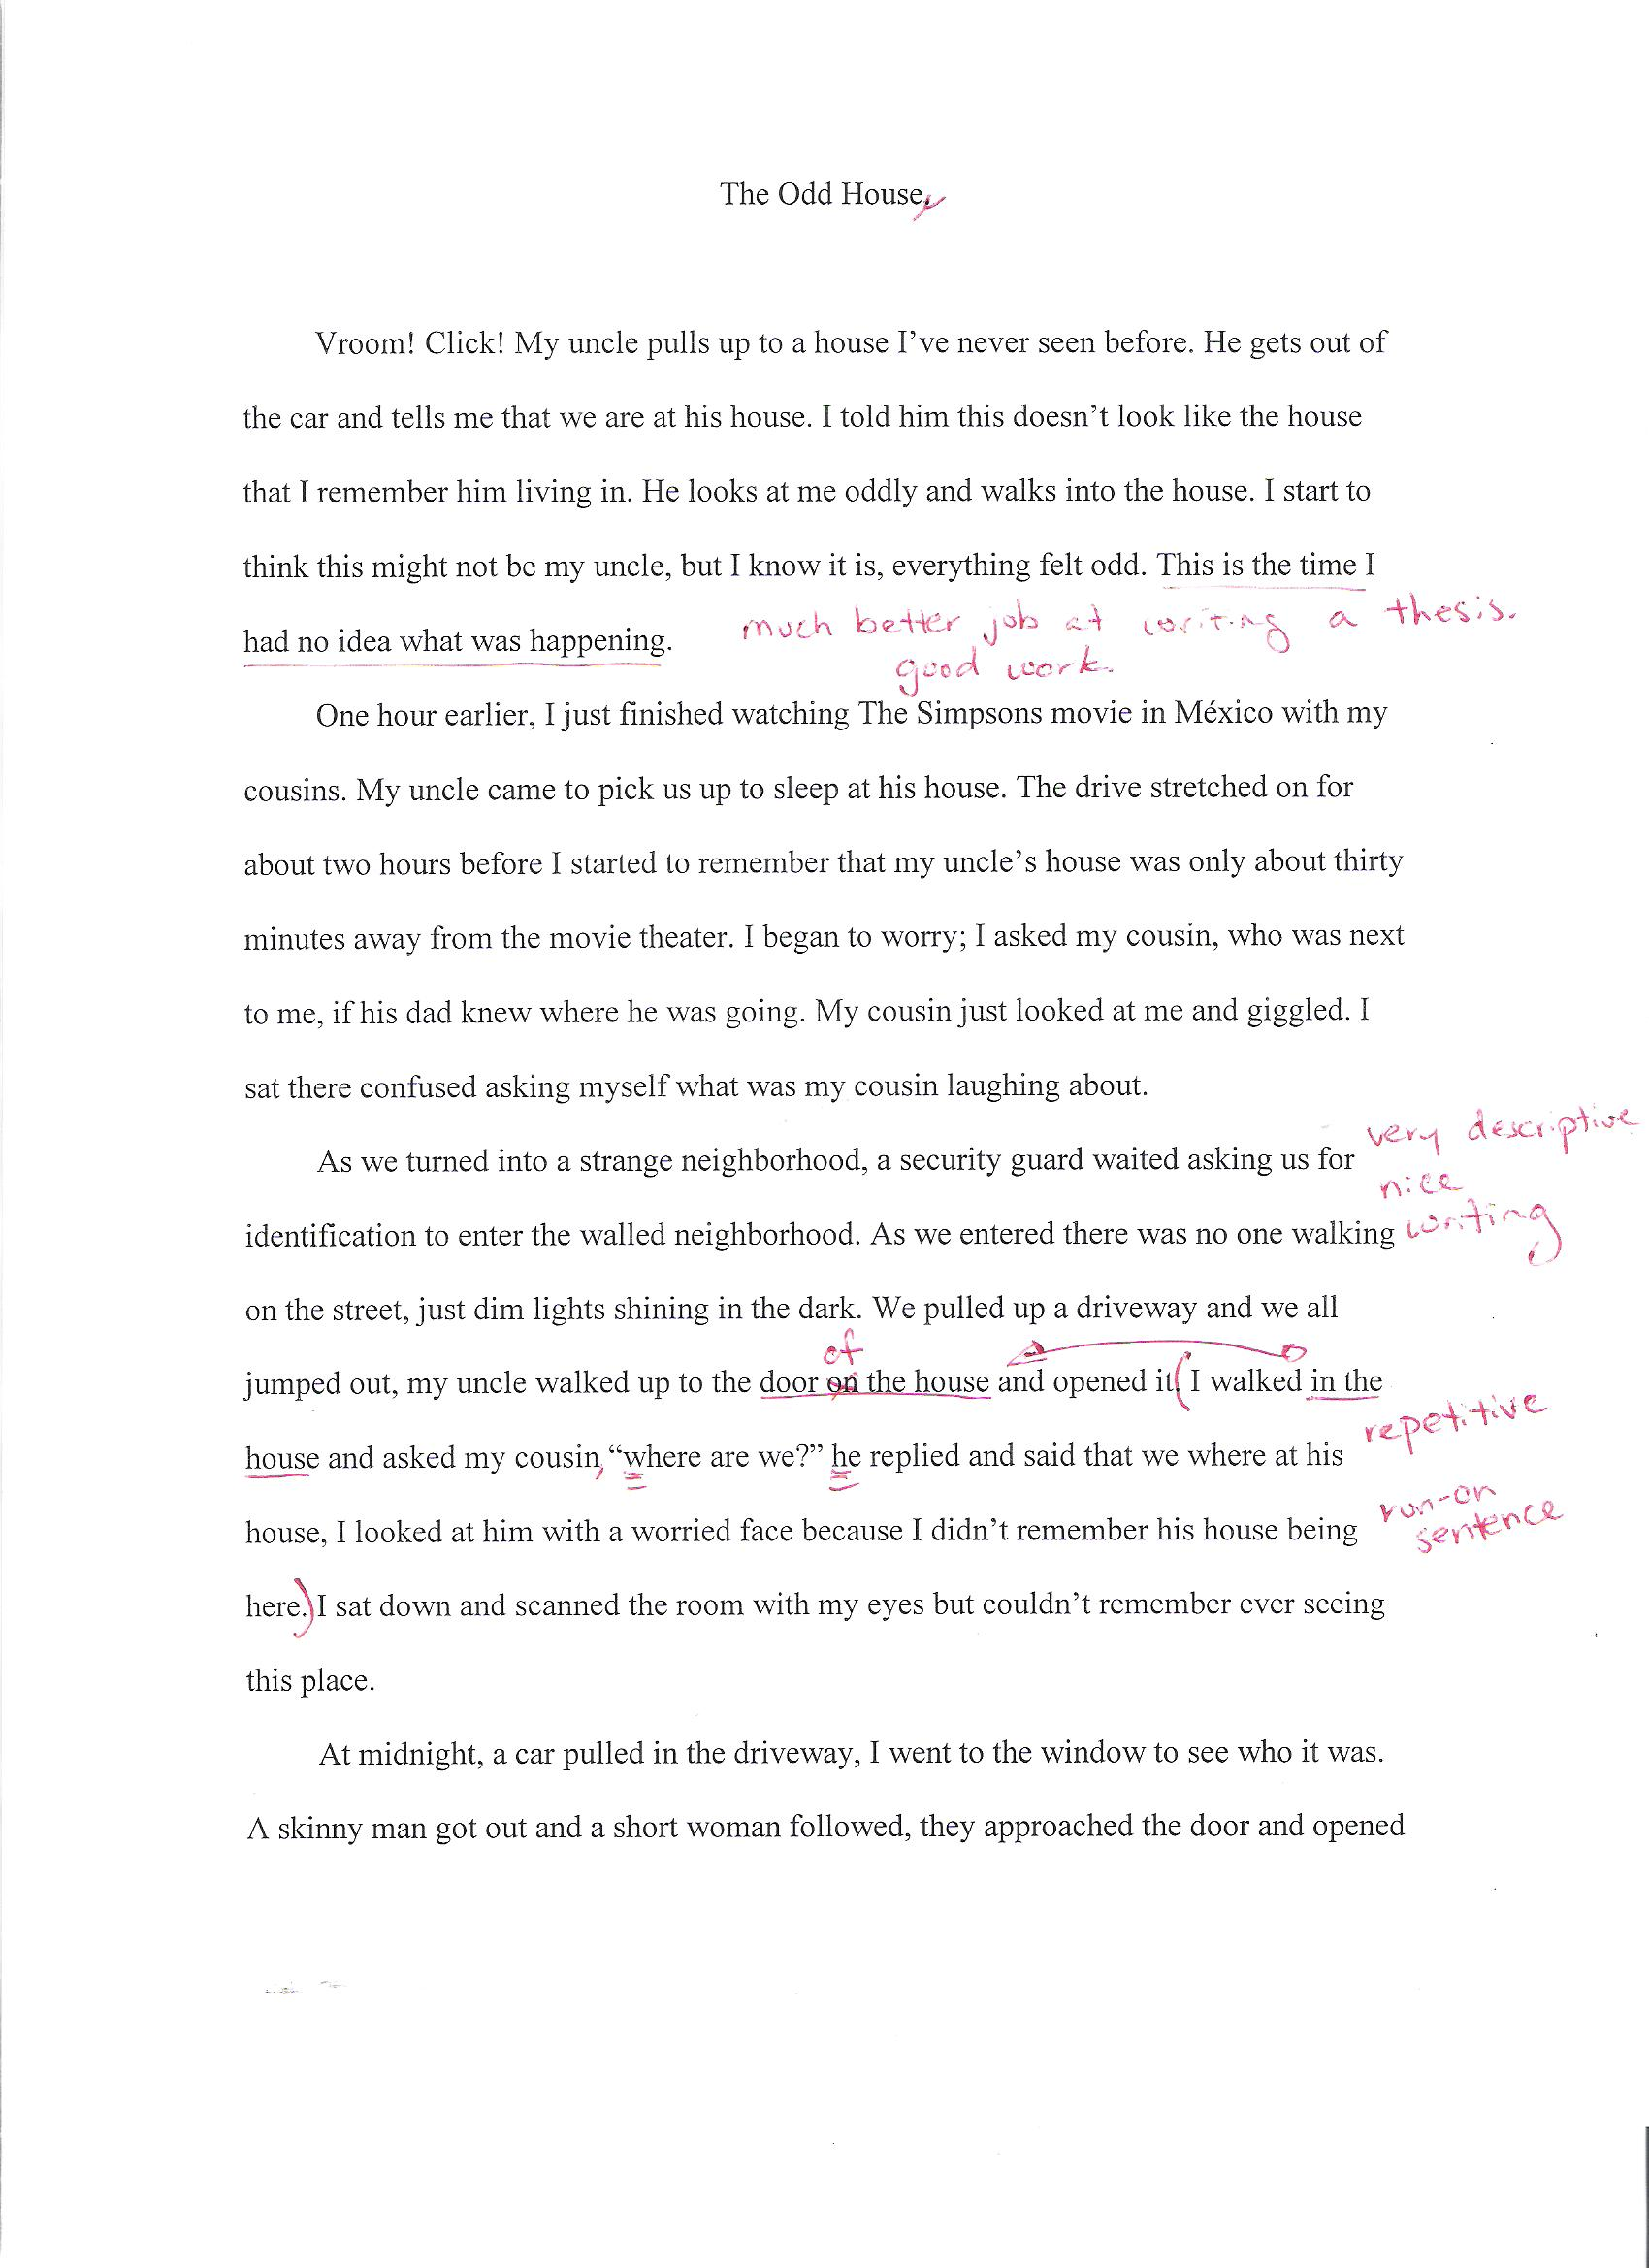 autobiography essay example autobiography essay example oglasi autobiography essay example oglasi coimage titled write an autobiographical essay step autobiography biography essays sample autobiographysample